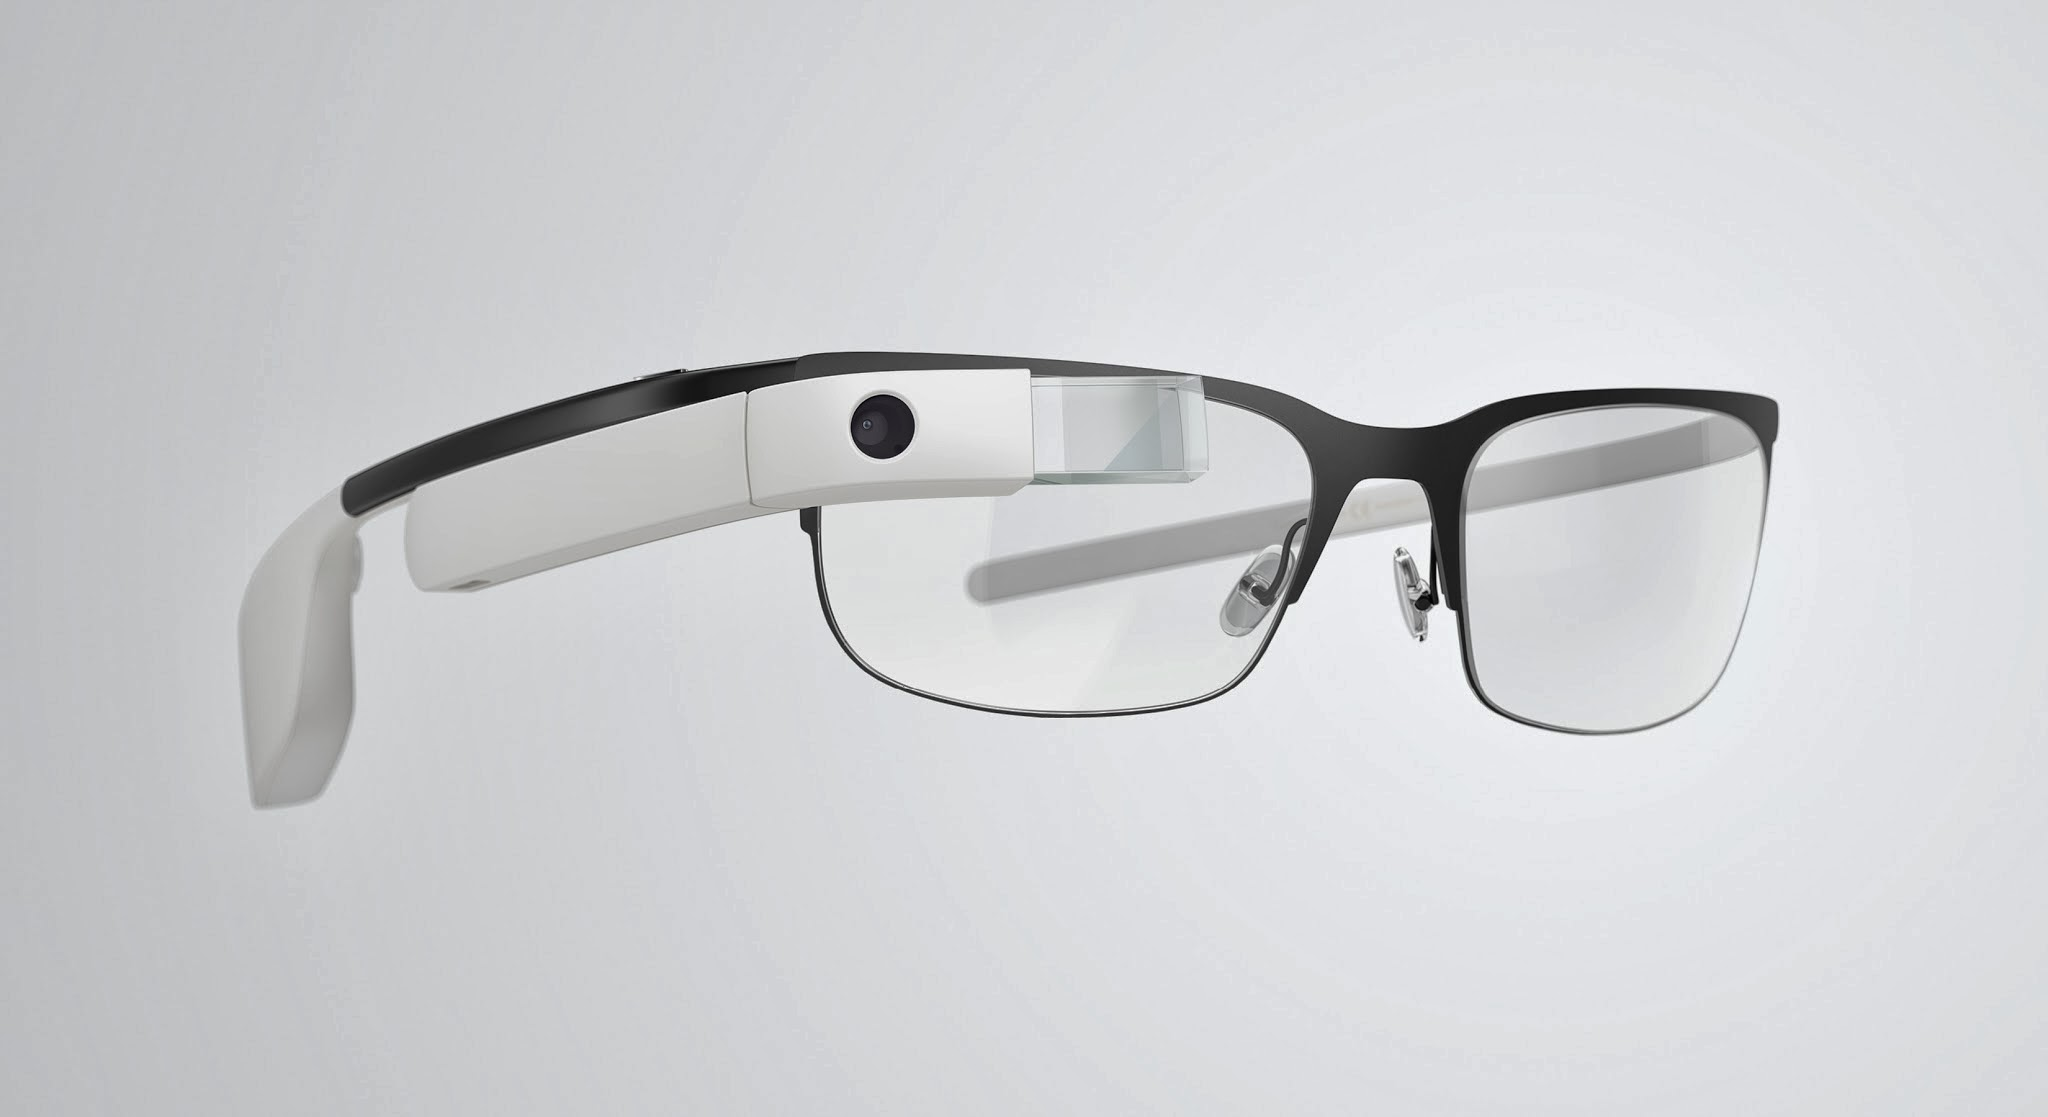 glass6 Google Glass can now be used with regular glasses after Google introduces $225 frames